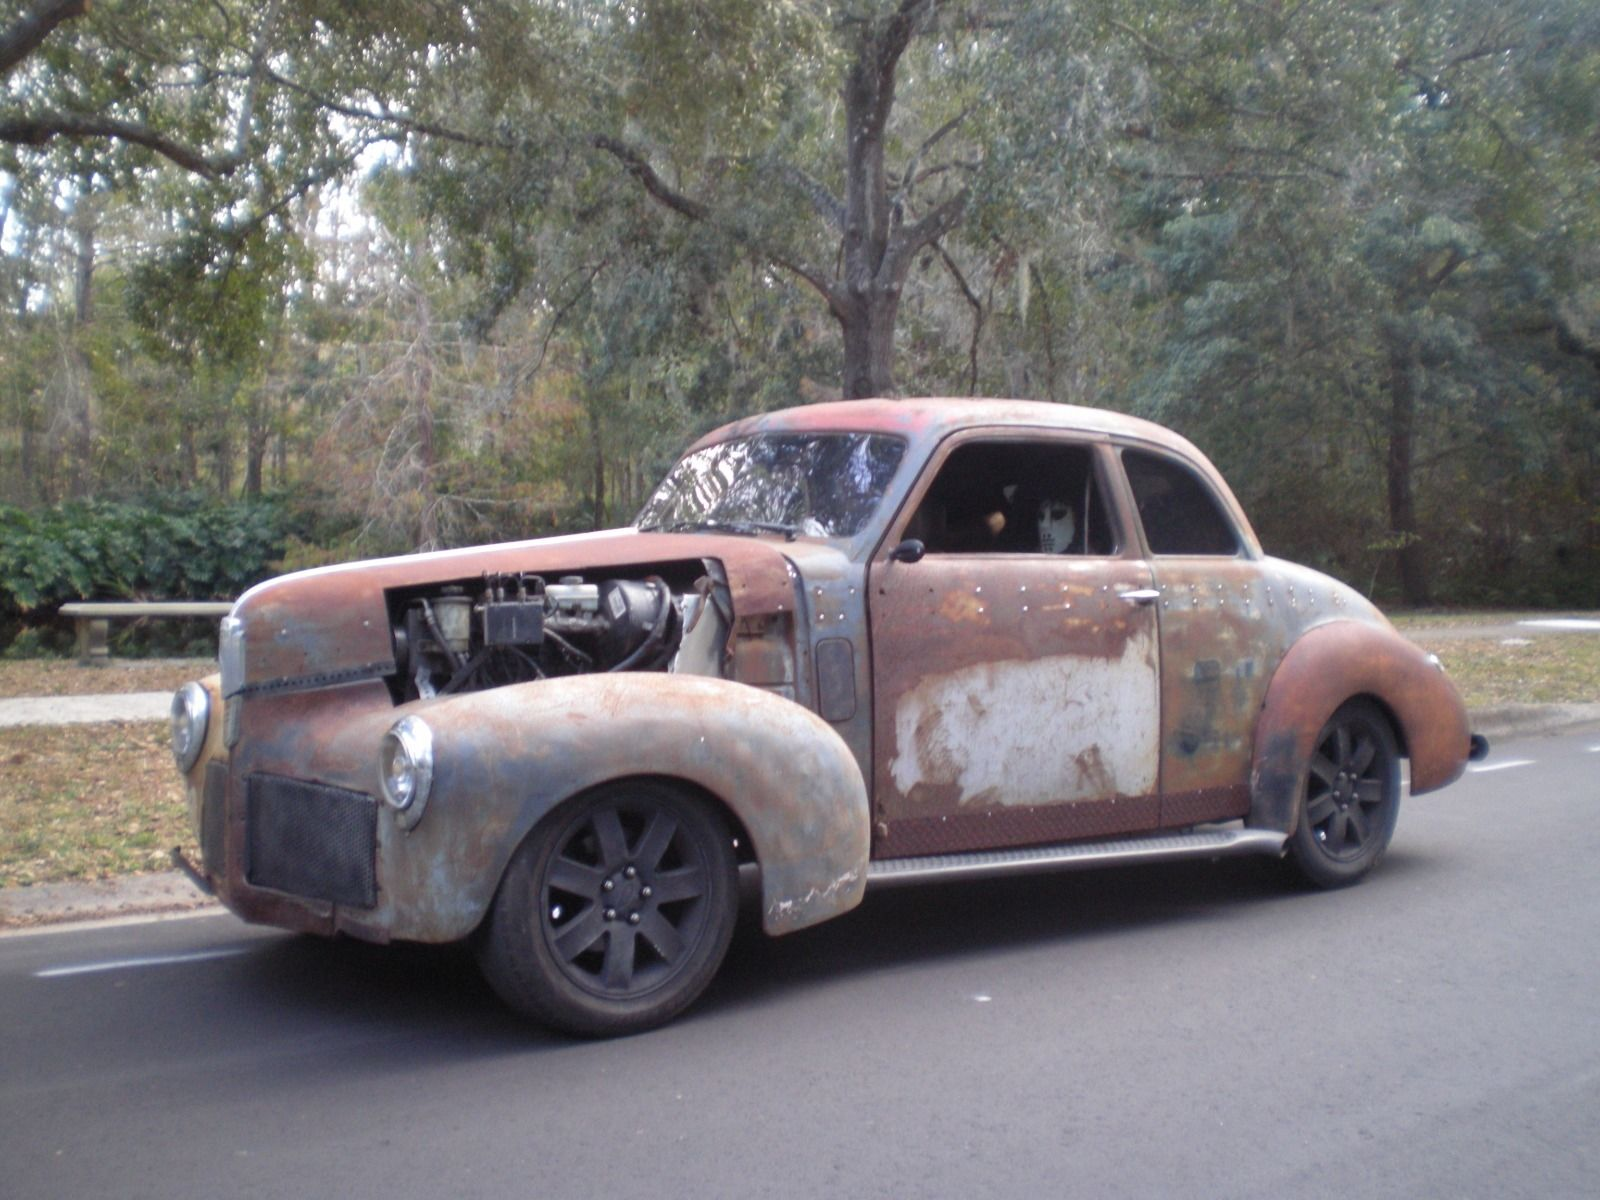 The Next Owner Will Need To Decide Whether To Keep The Rat Rod Concept  Going Or Repaint. We Think It Should Probably Stay This Way, ...